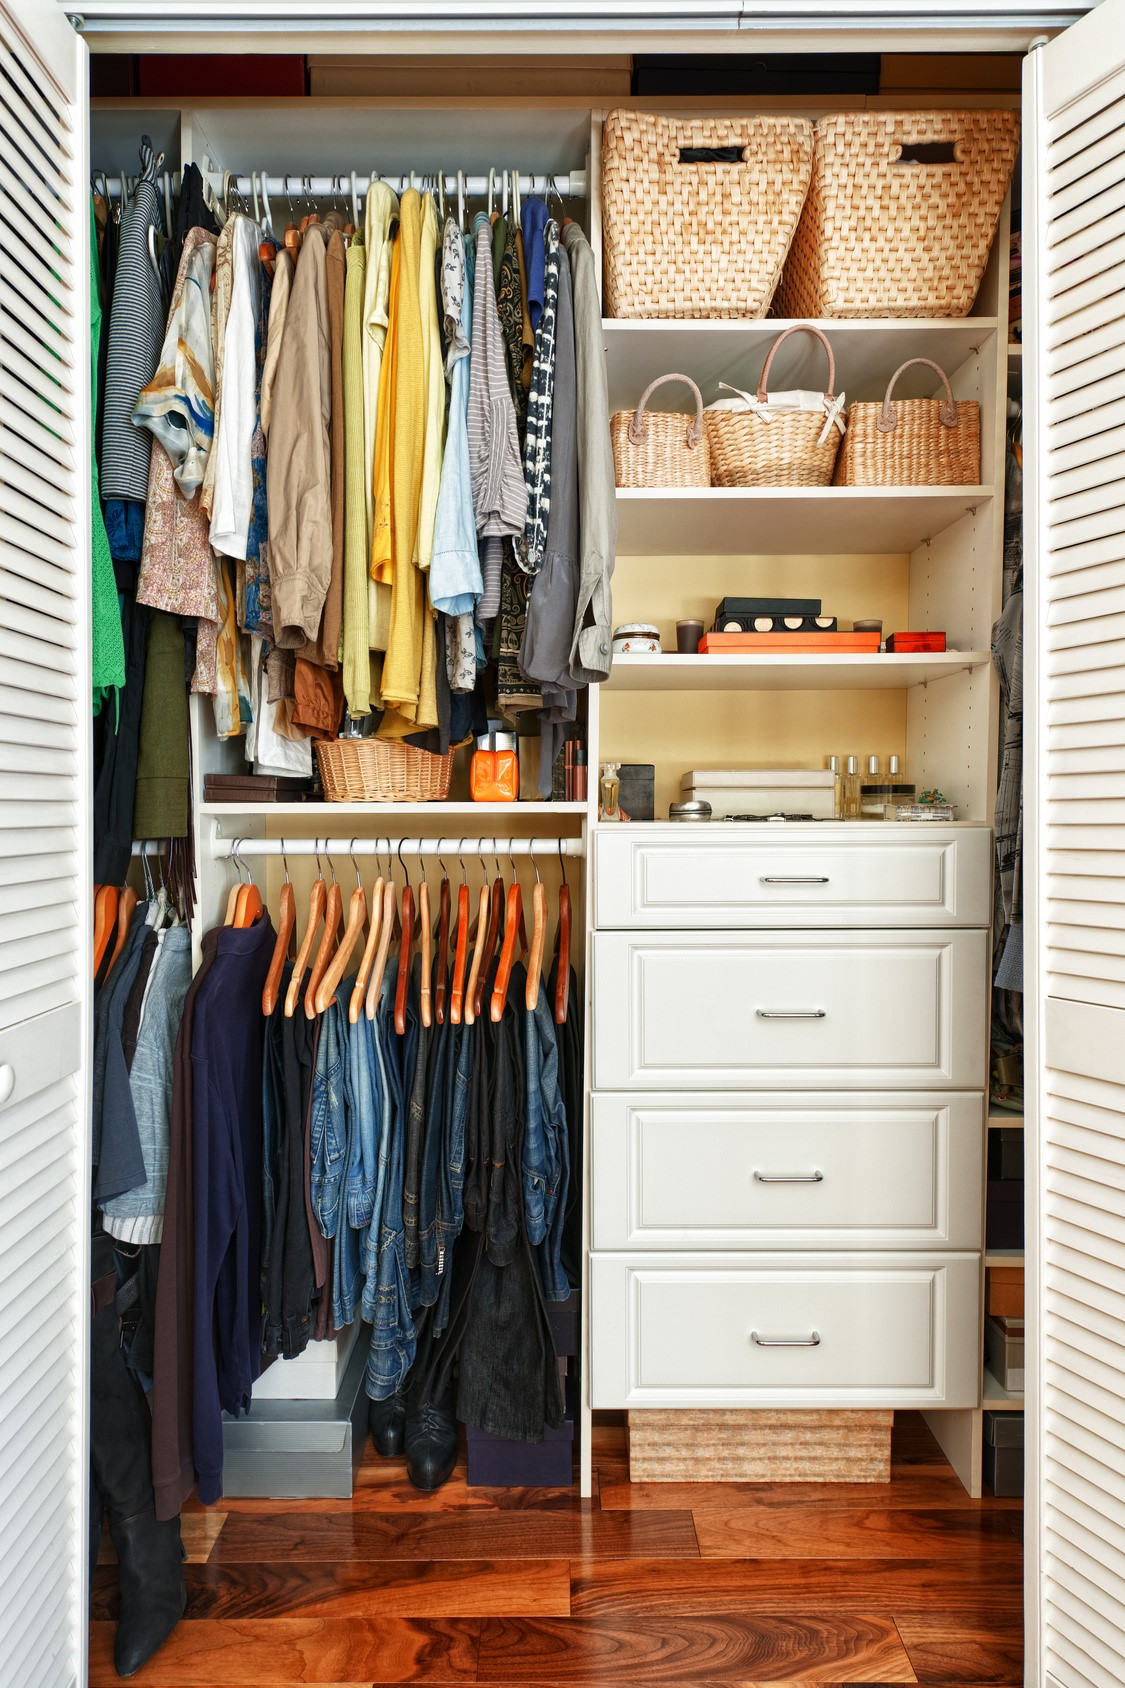 Keeping Your Closet Organized Can Be A Huge Headache. Thereu0027s So Many  Components To A Closet That It Can Be Hard To Tell Where To Start In The  Space To ...